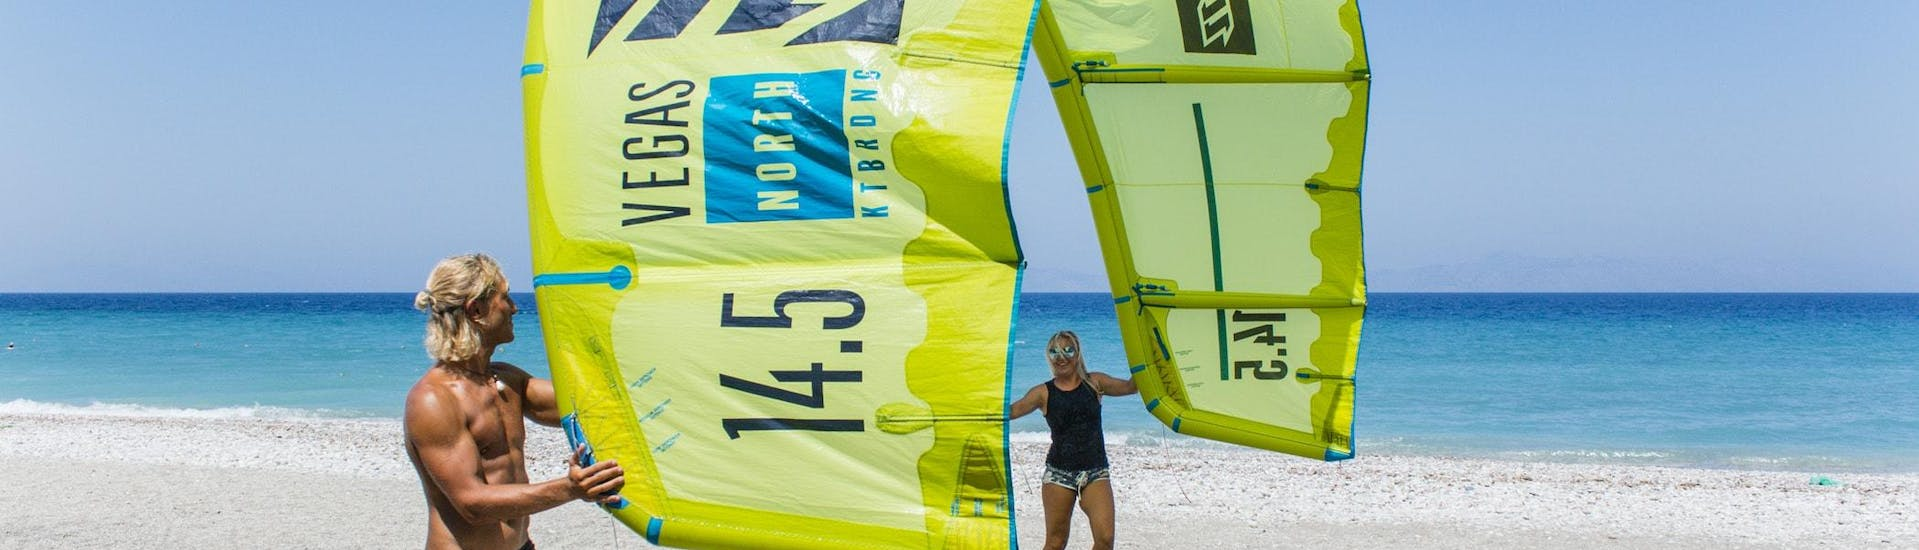 Kitesurfing Lessons for Beginners